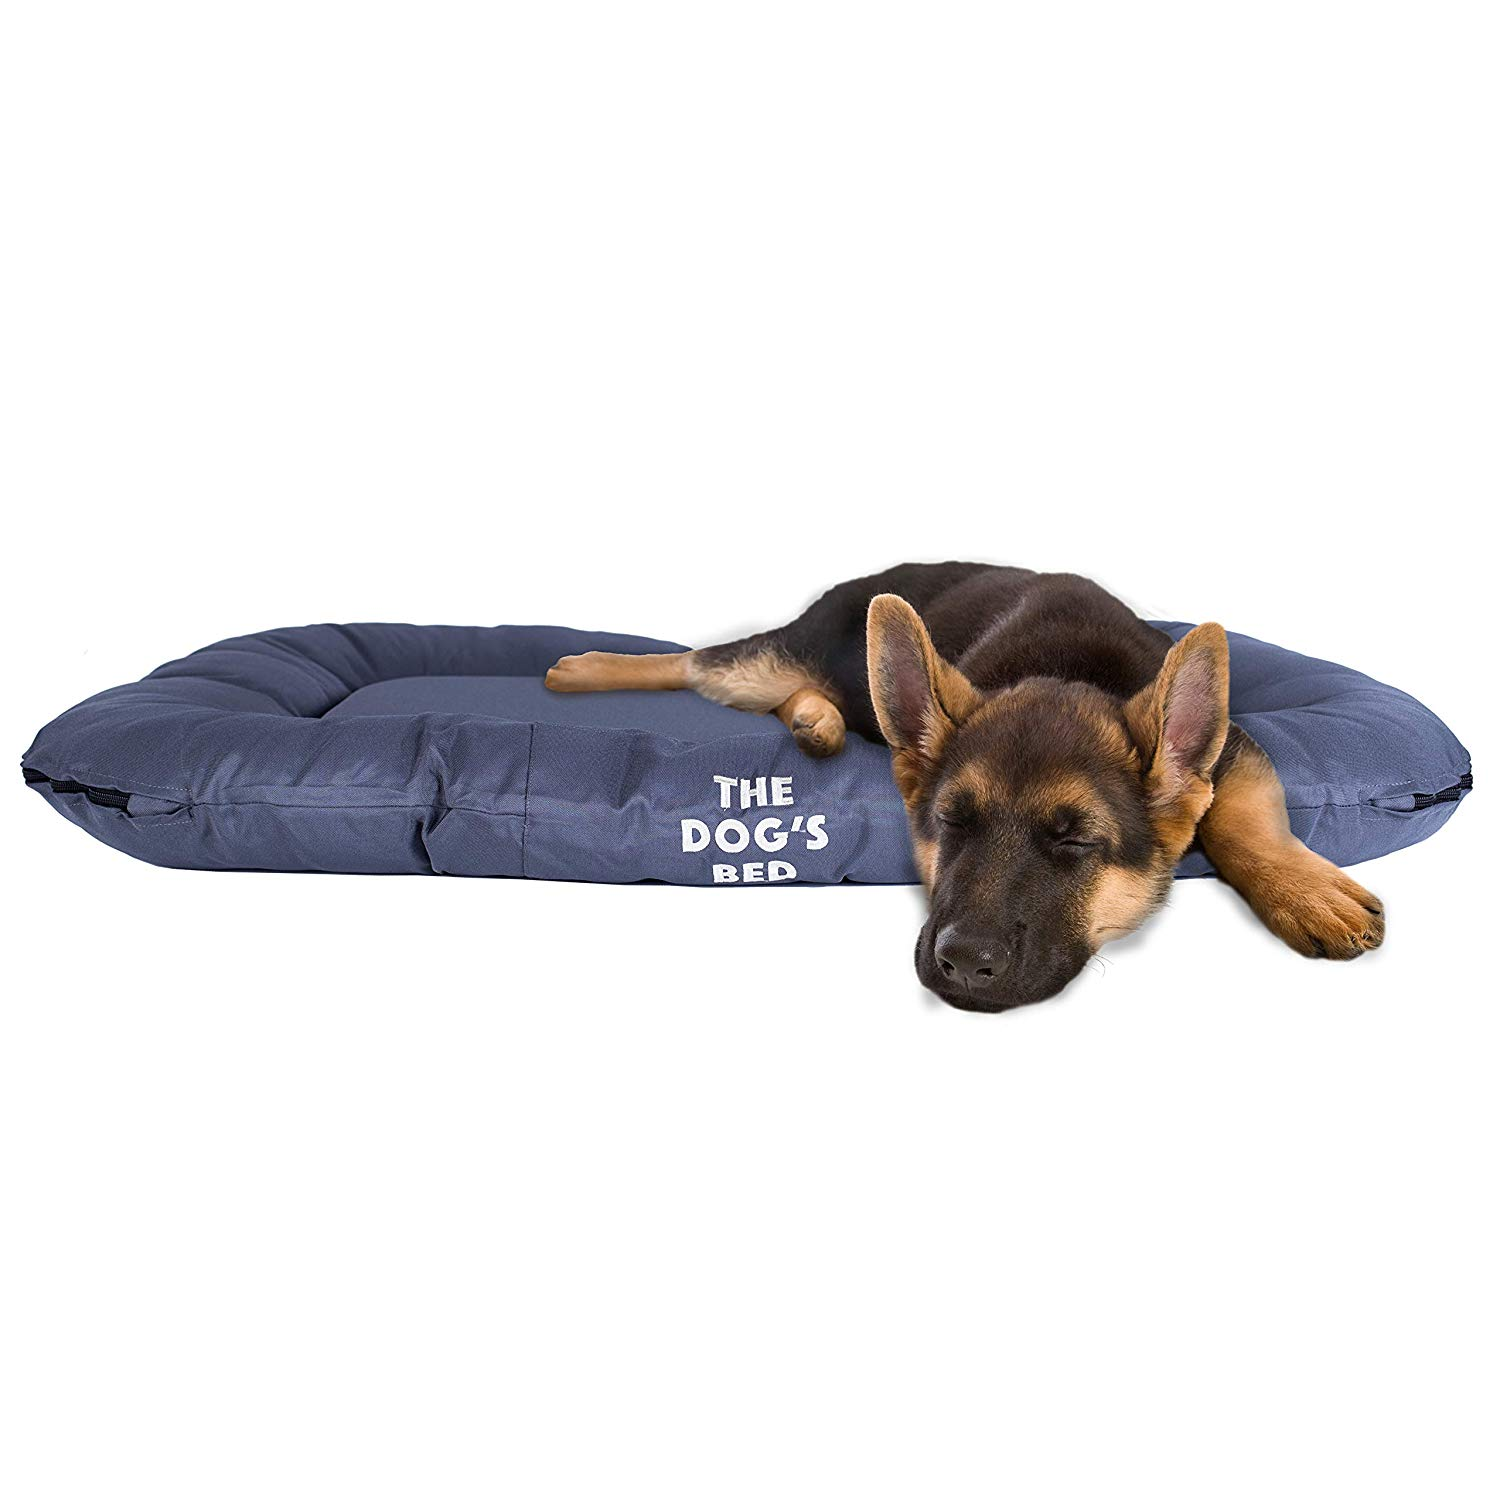 The Dog's Bed Premium Waterproof Dog Bed